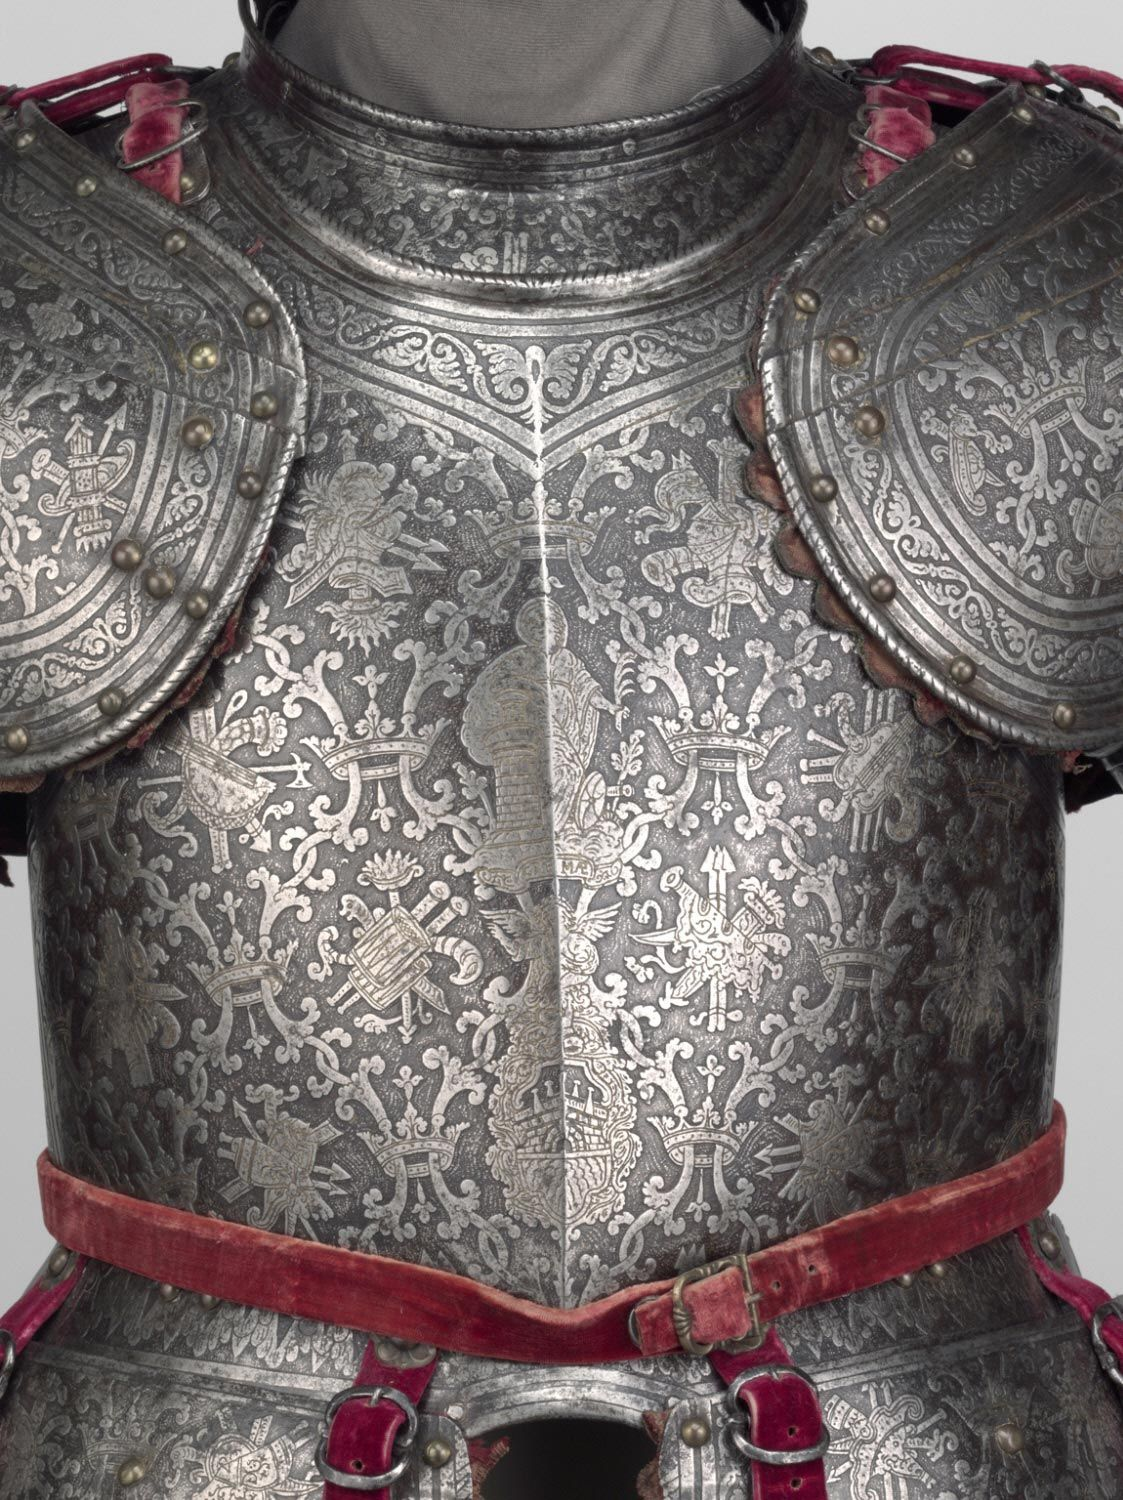 Philadelphia Museum of Art - Collections Object : Half Armor Half Armor For use on foot in the field  Attributed to the armorer Master of the Castle Mark, Italian (active Milan), active c. 1590 - 1620  Geography: Made in Milan, Italy, Europe Date: c. 1600